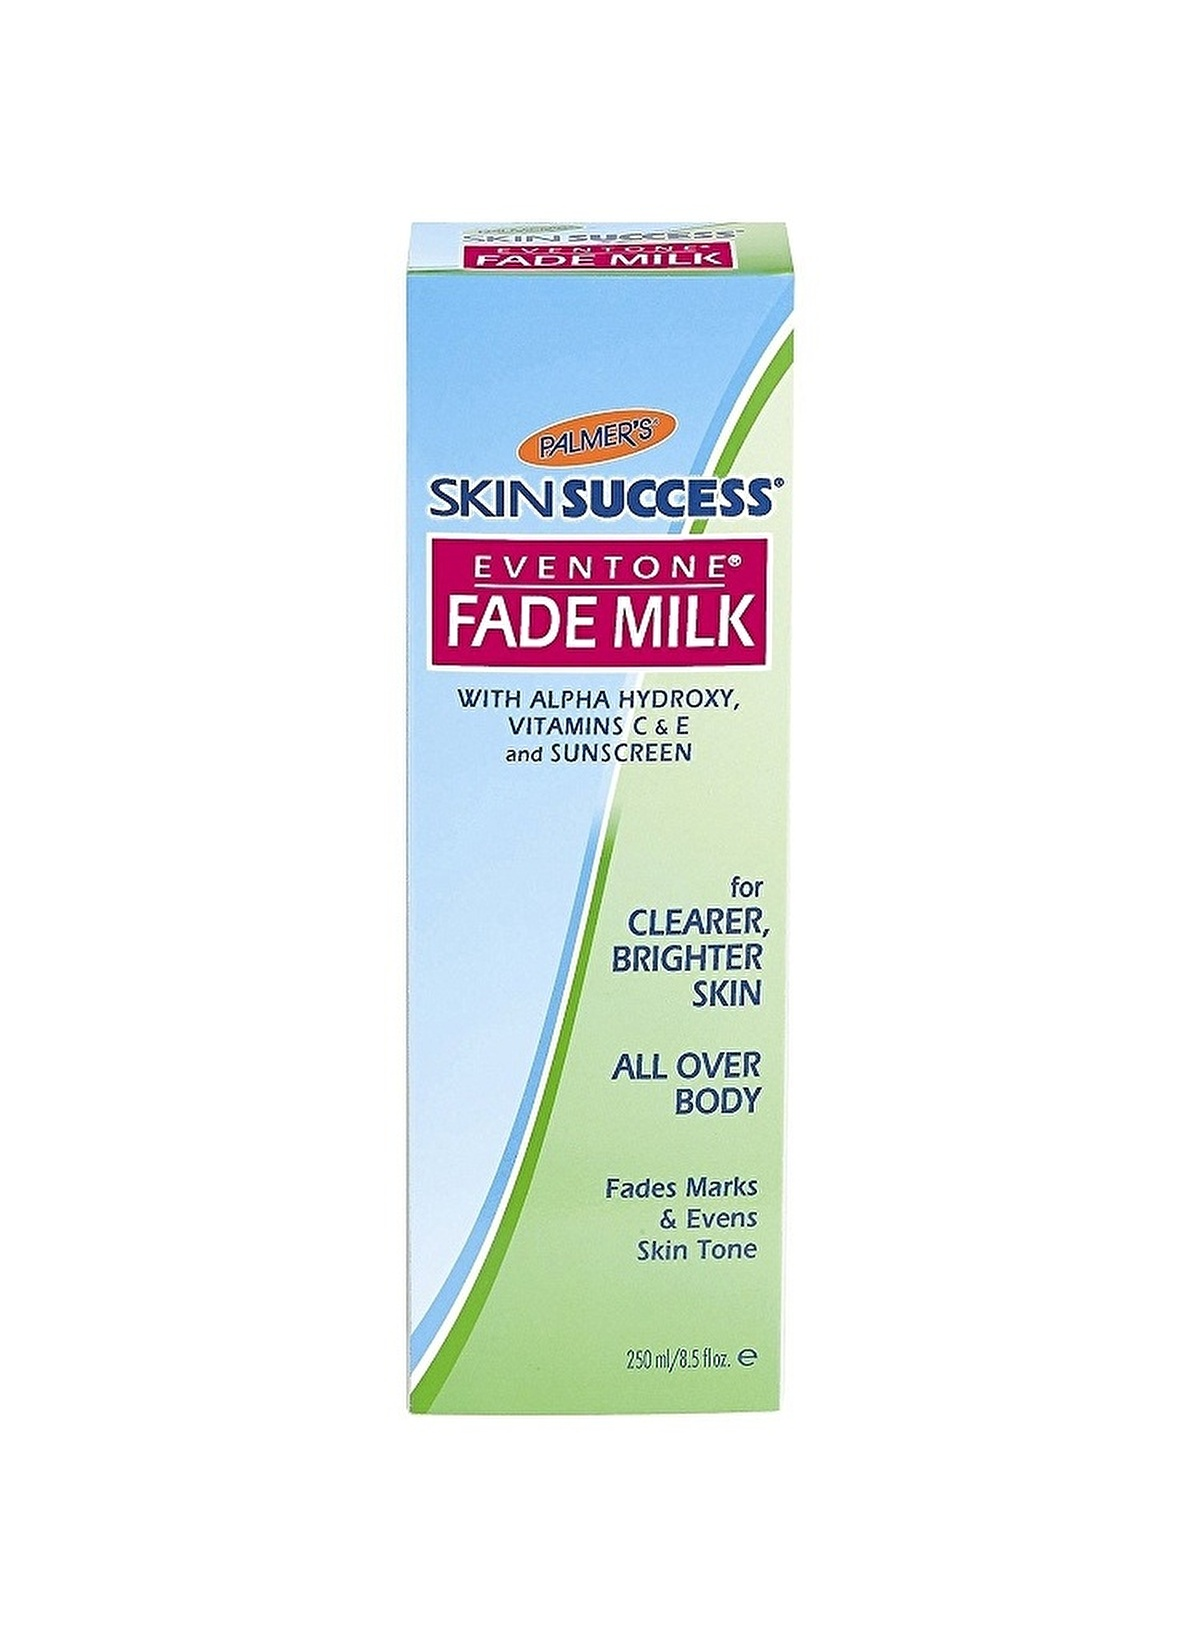 Palmers Anti Dark Spot Fade Milk Body Loti 250ml Anti Dark Spot Fade Milk Body Loti 250ml – 130.0 TL